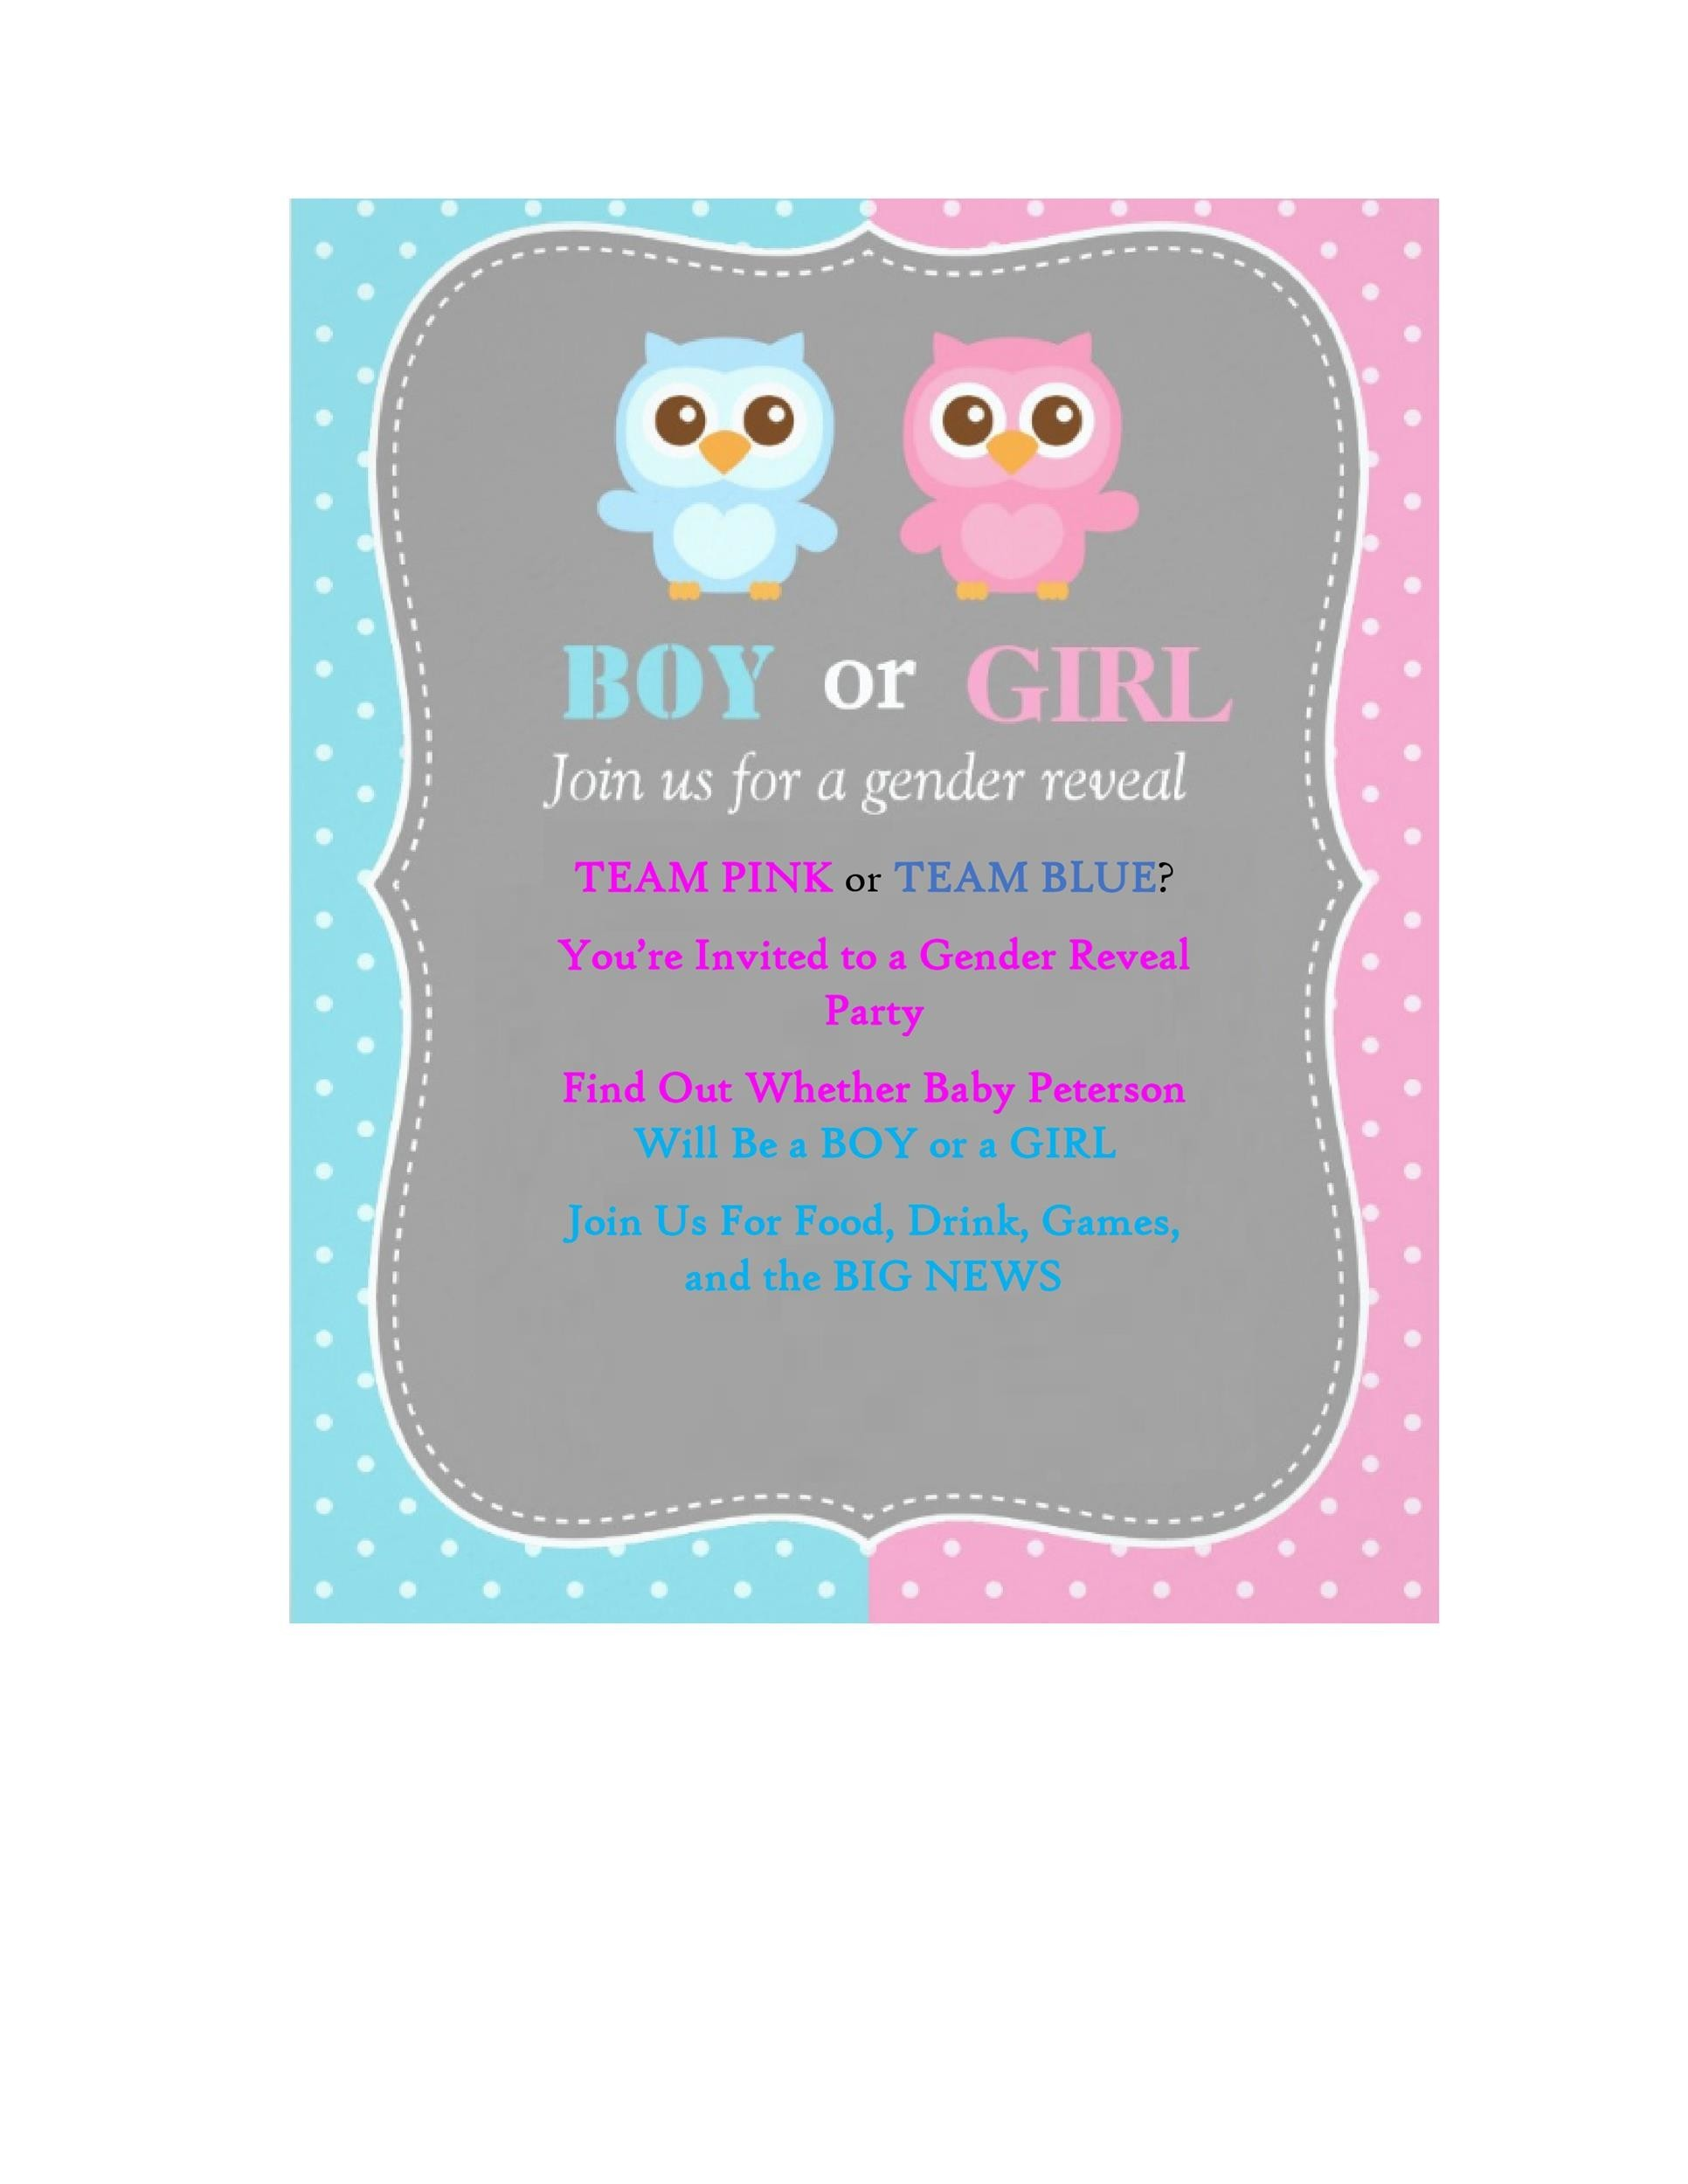 printable gender reveal invitation template 08 - Free Printable Gender Reveal Party Invitations